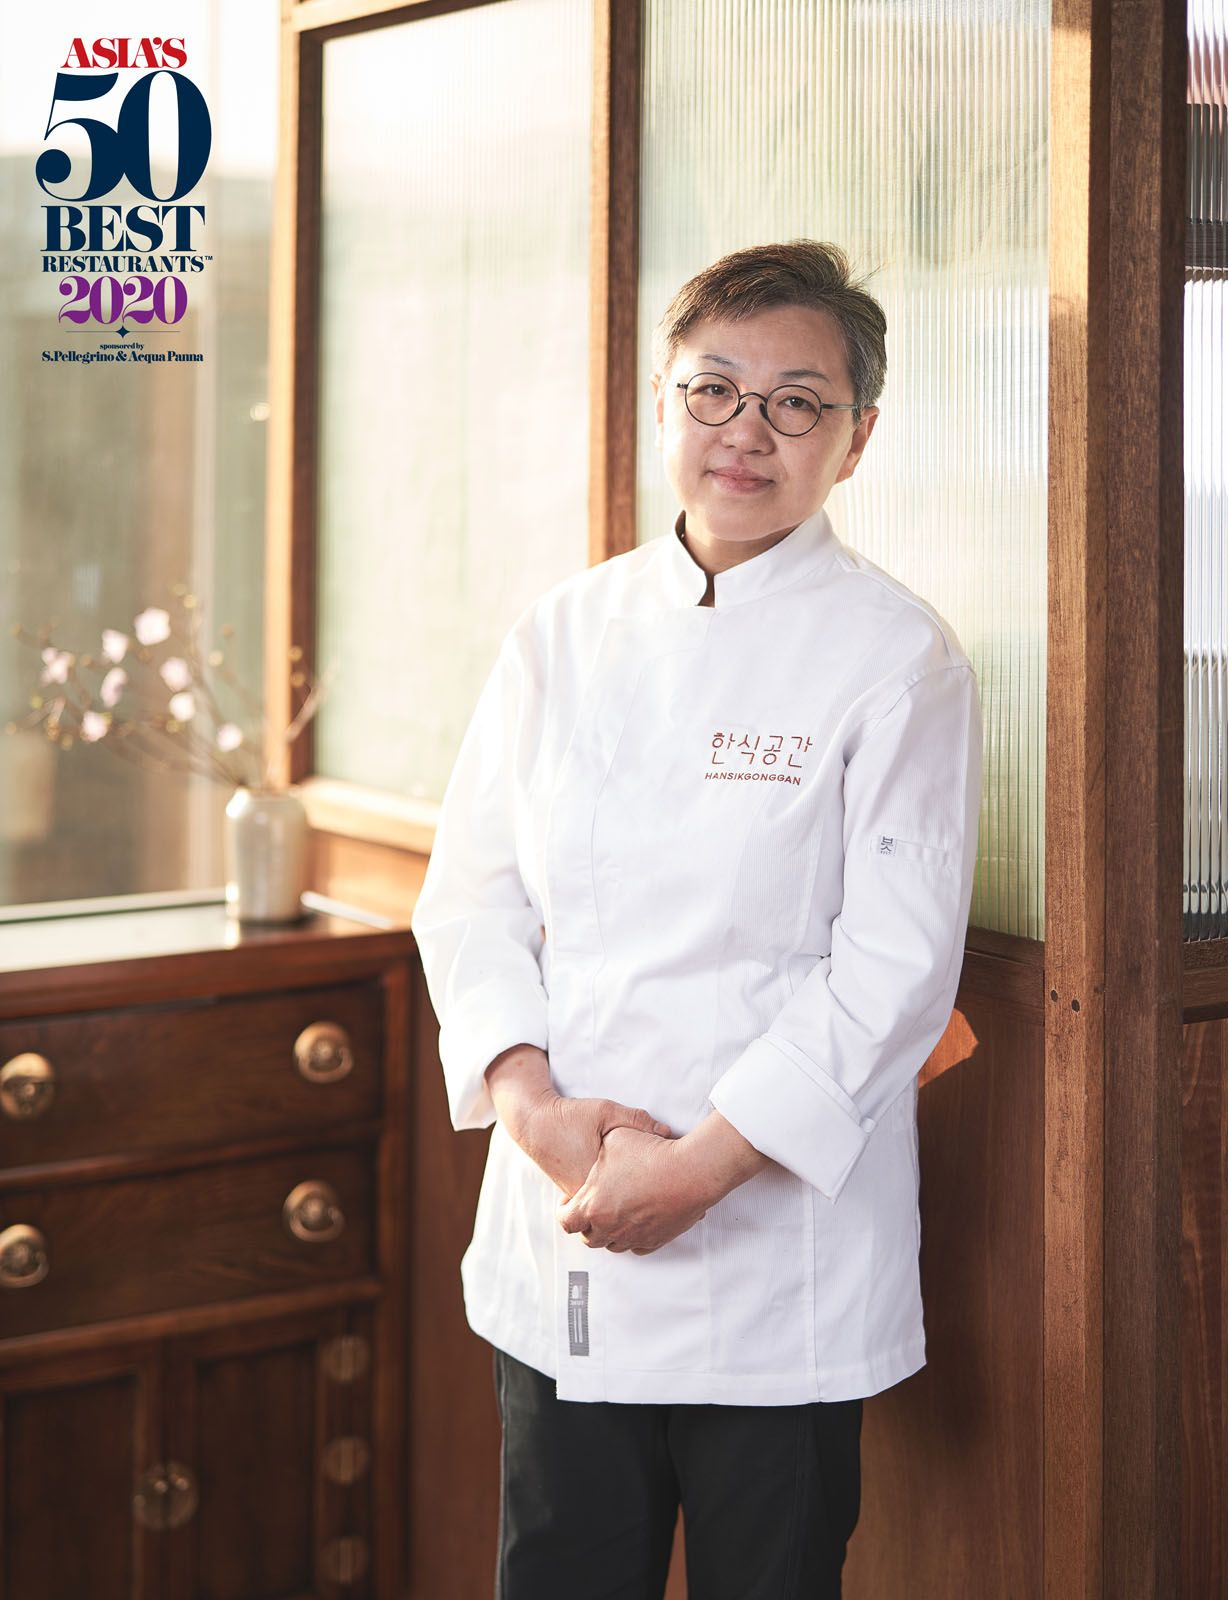 Who is Cho Hee-sook? Meet Asia's Best Female Chef of 2020 and Owner of Michelin-starred Hansikgonggan